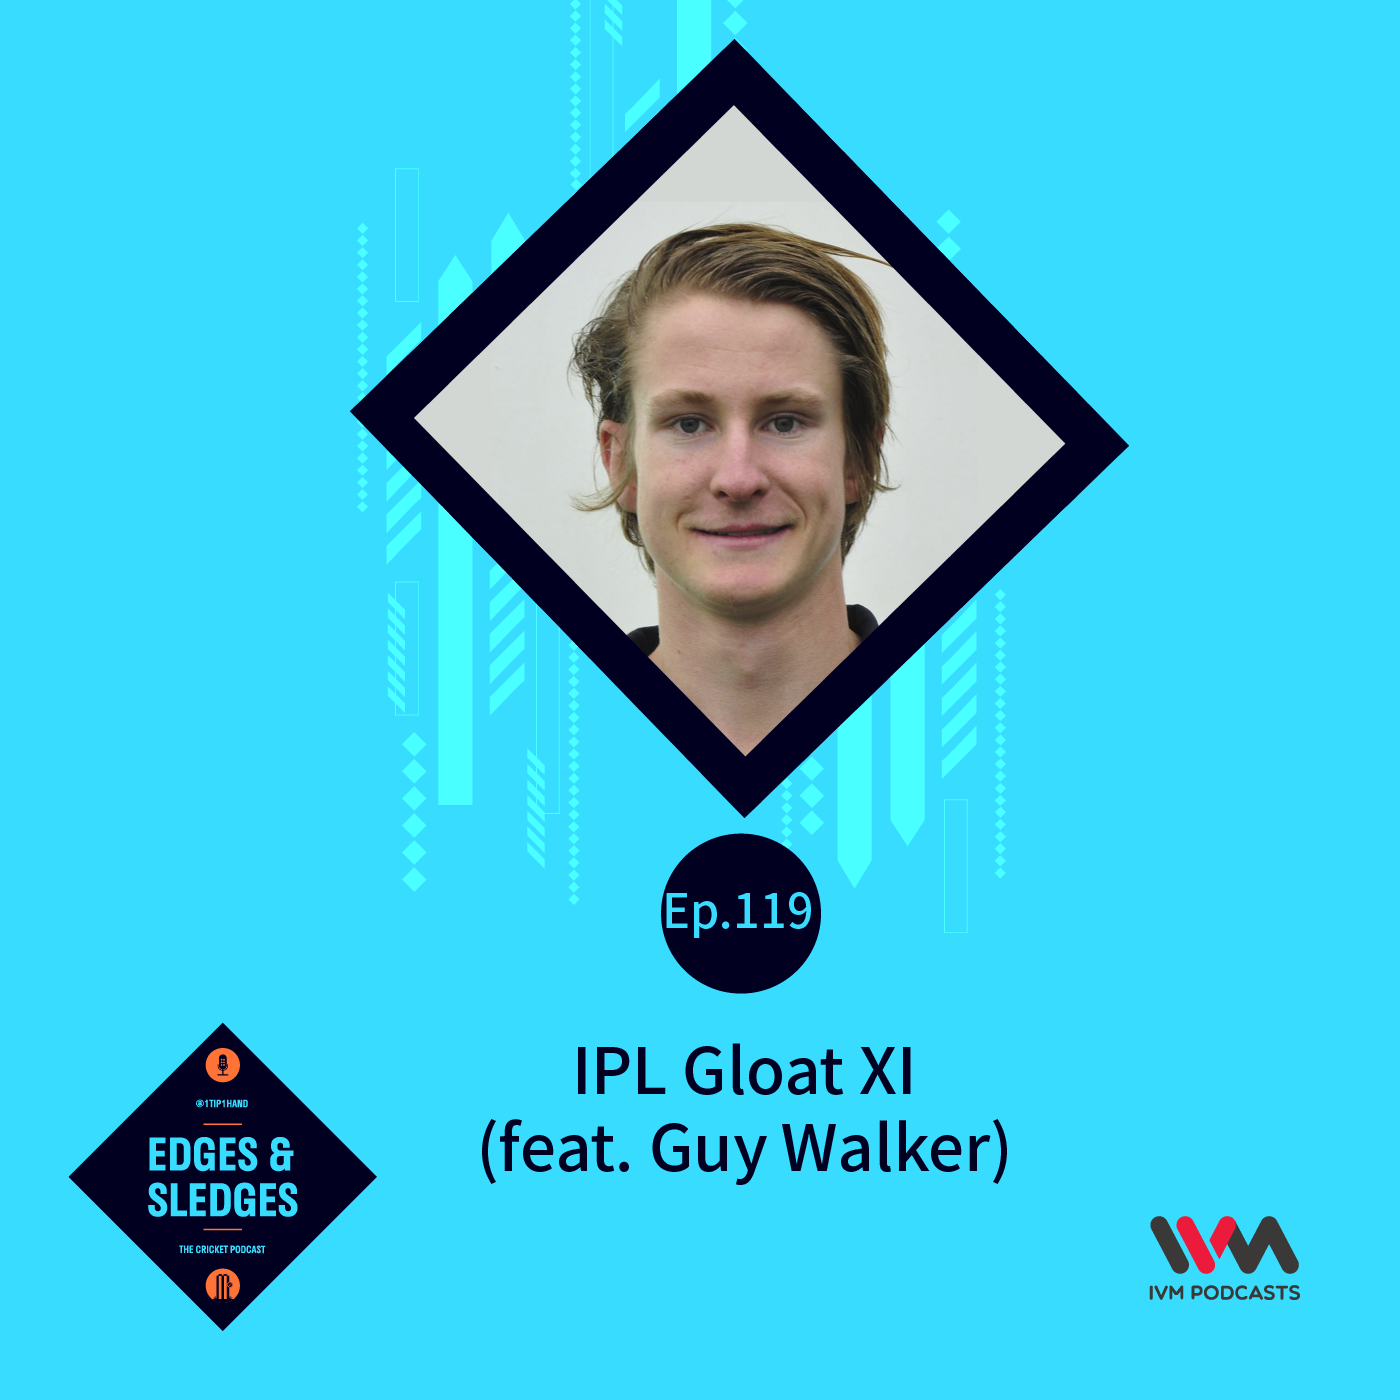 Ep. 119: IPL Gloat XI (feat. Guy Walker)